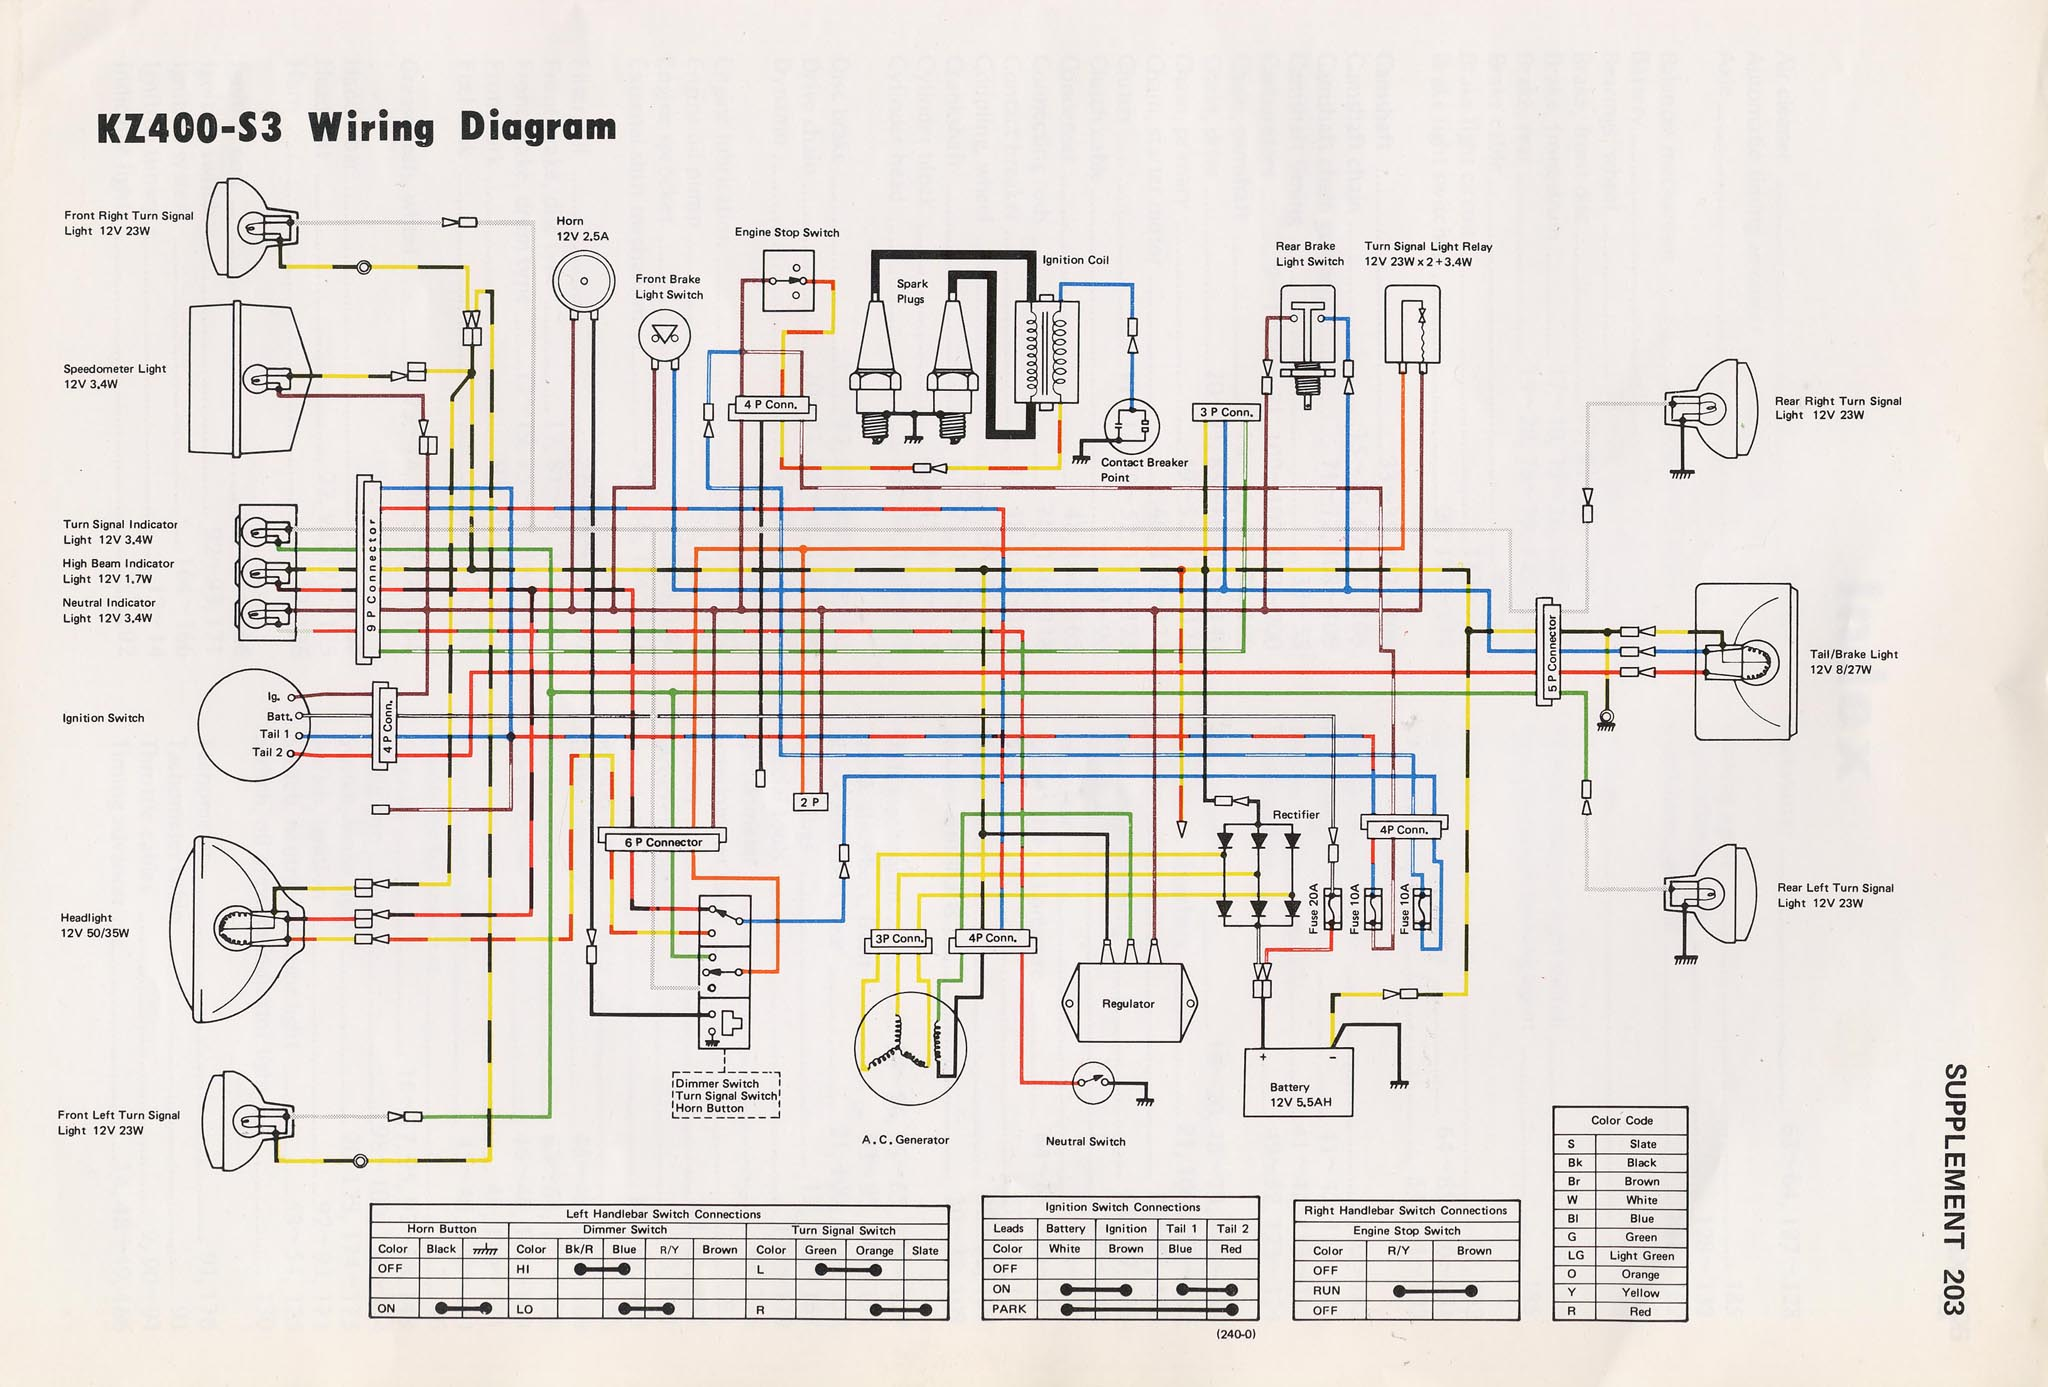 kz400 S3 index of techh tips bilder wiring diagrams 1980 kawasaki kz440 wiring diagram at readyjetset.co